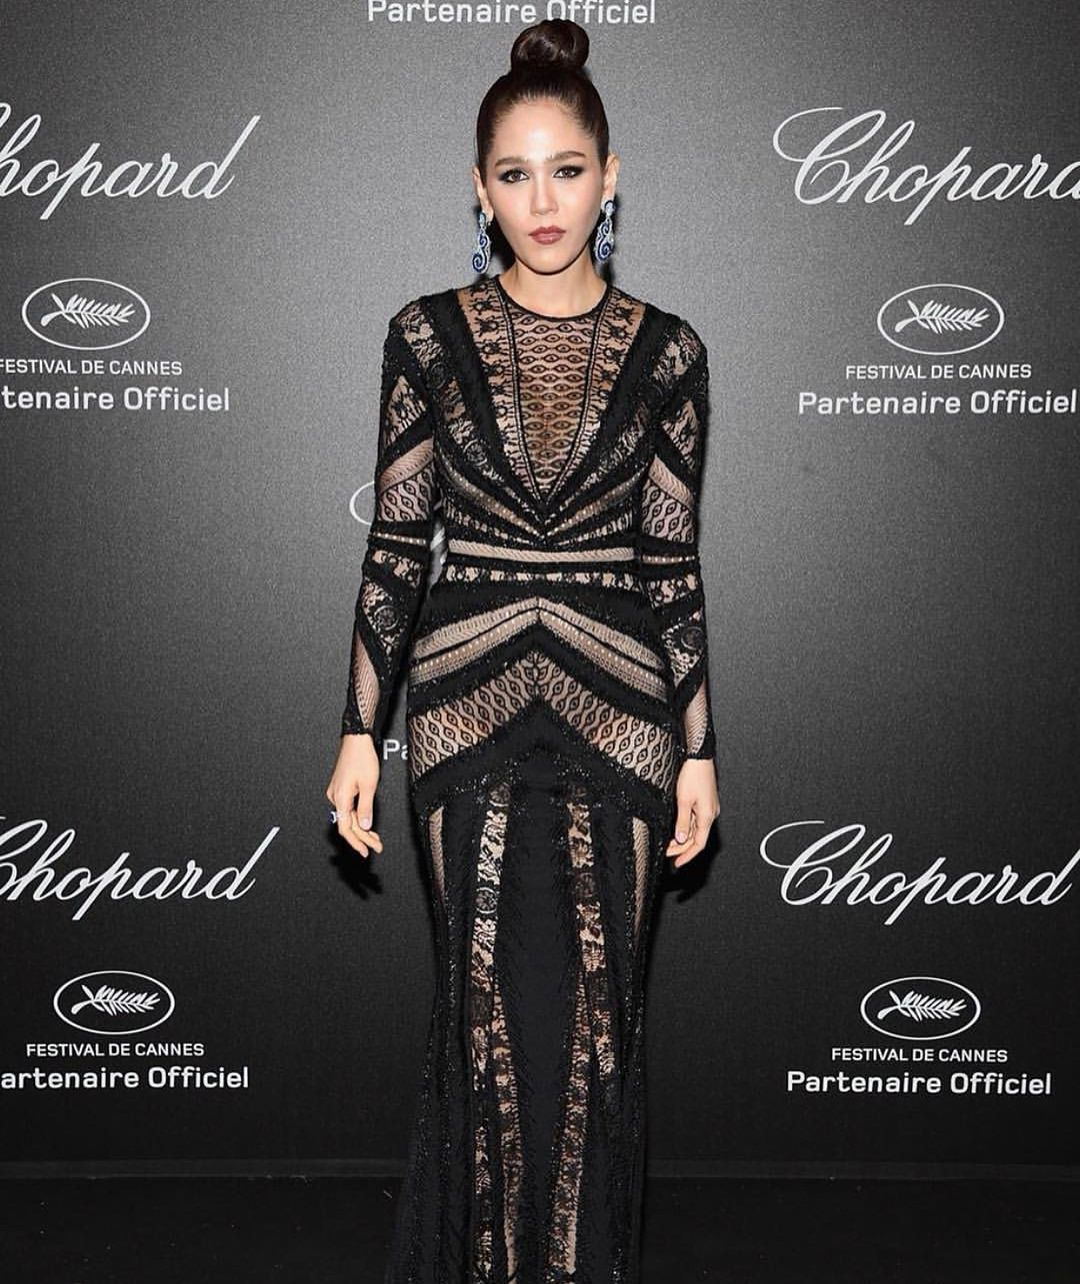 Chomismaterialgirl dropped jaws at the chopard secretnight party